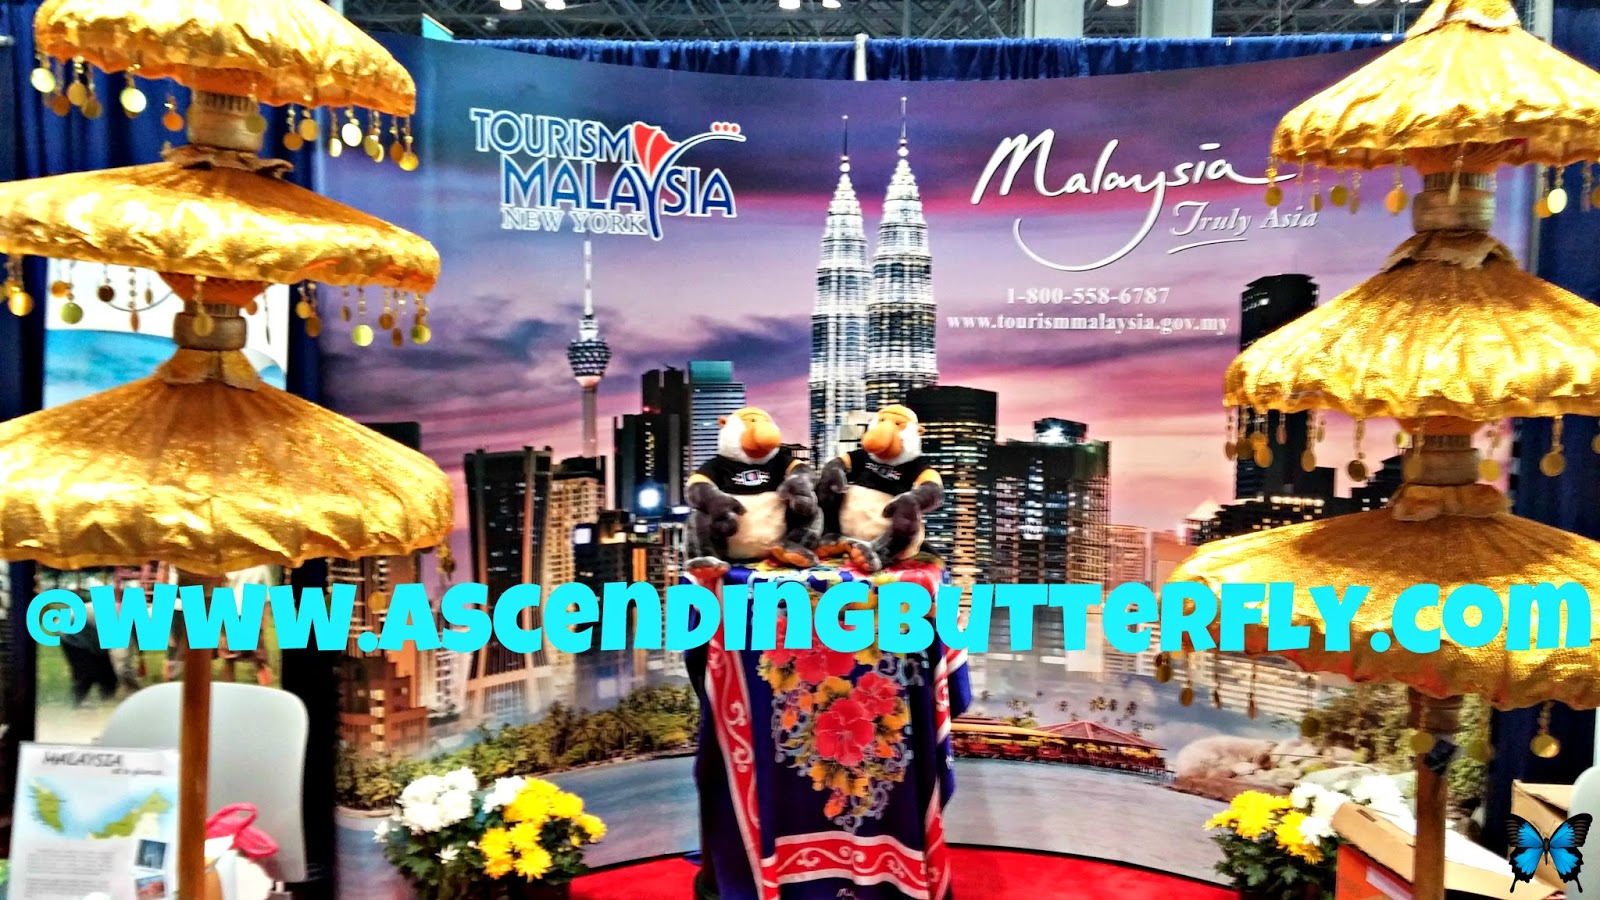 Tourism Malaysia display table at New York Times Travel Show